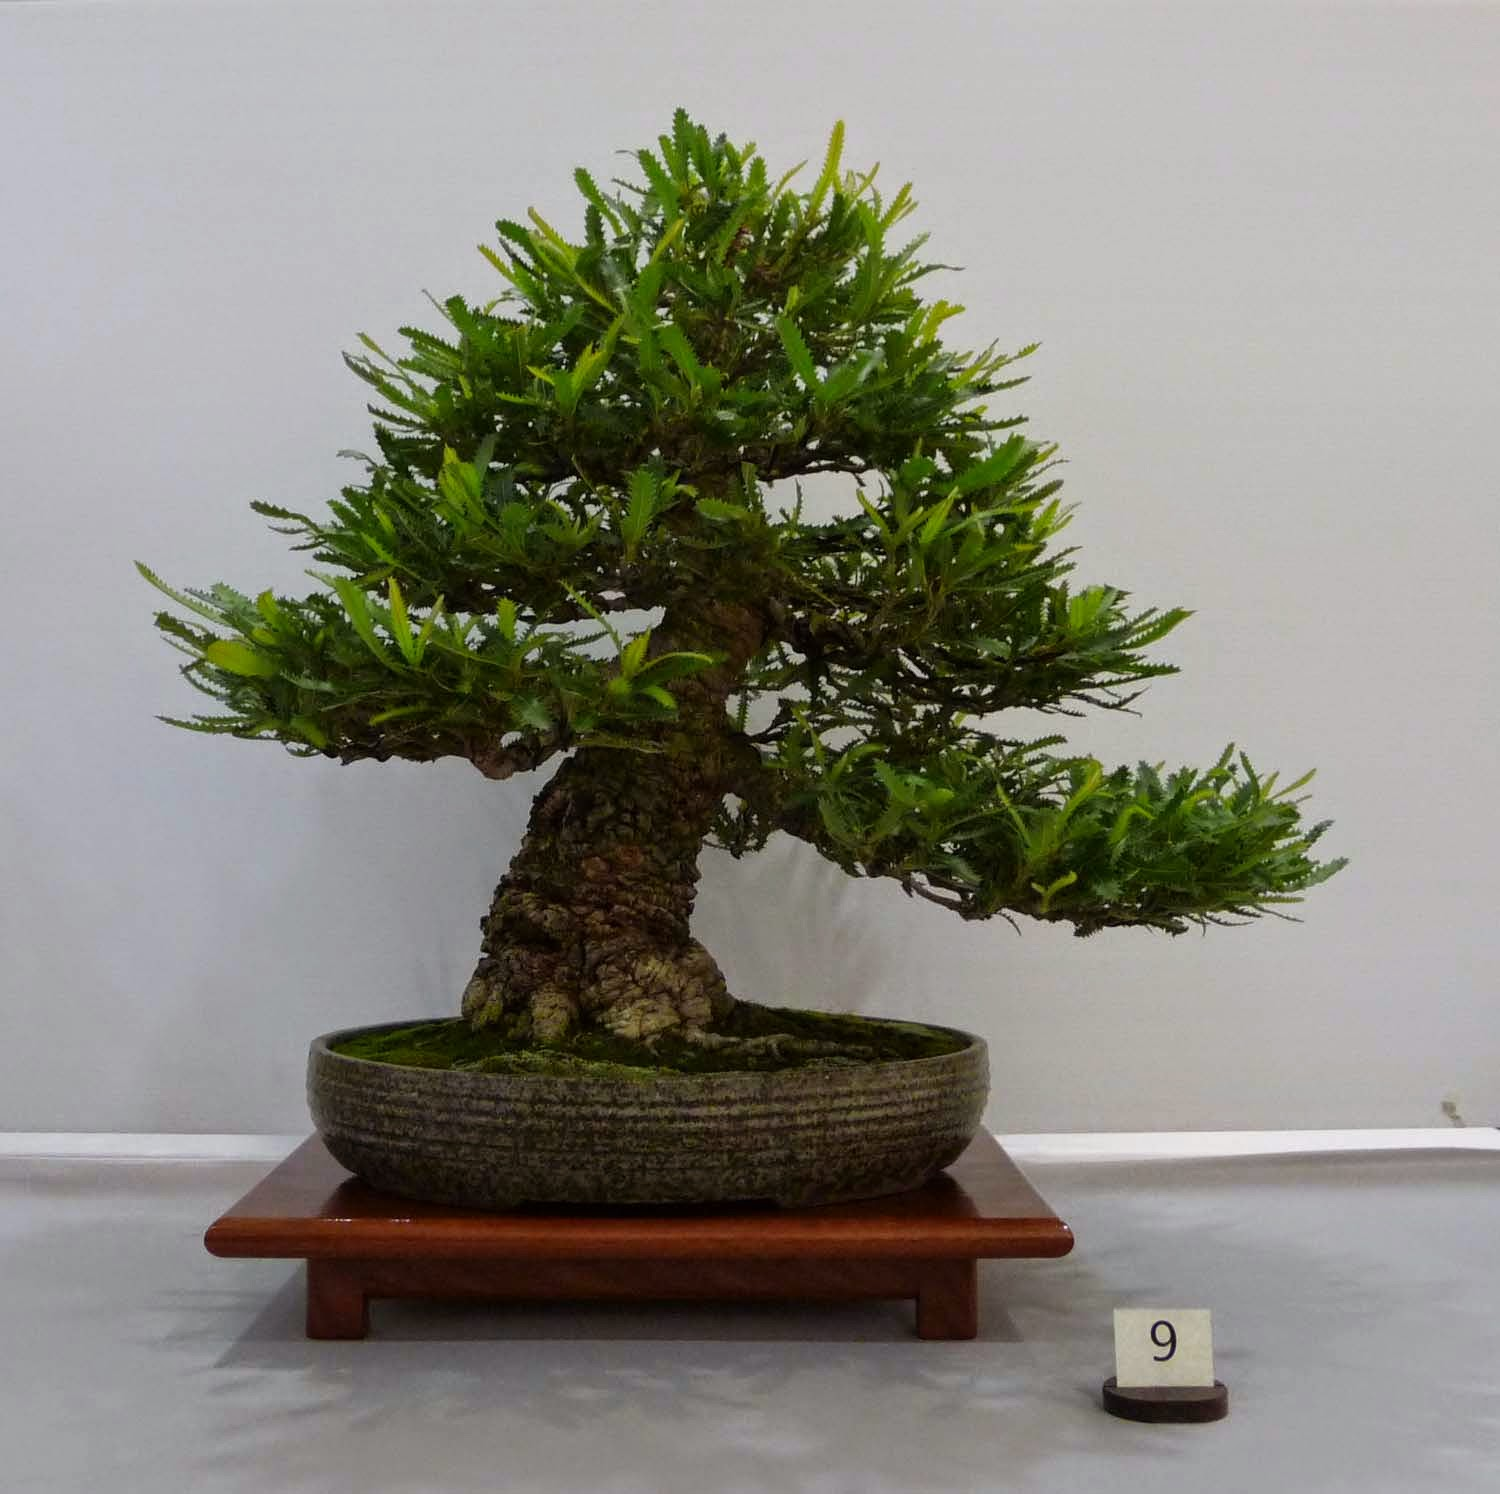 Bonsai Amp Pottery Post 201 Exhibition Of Victorian Native Bonsai Club